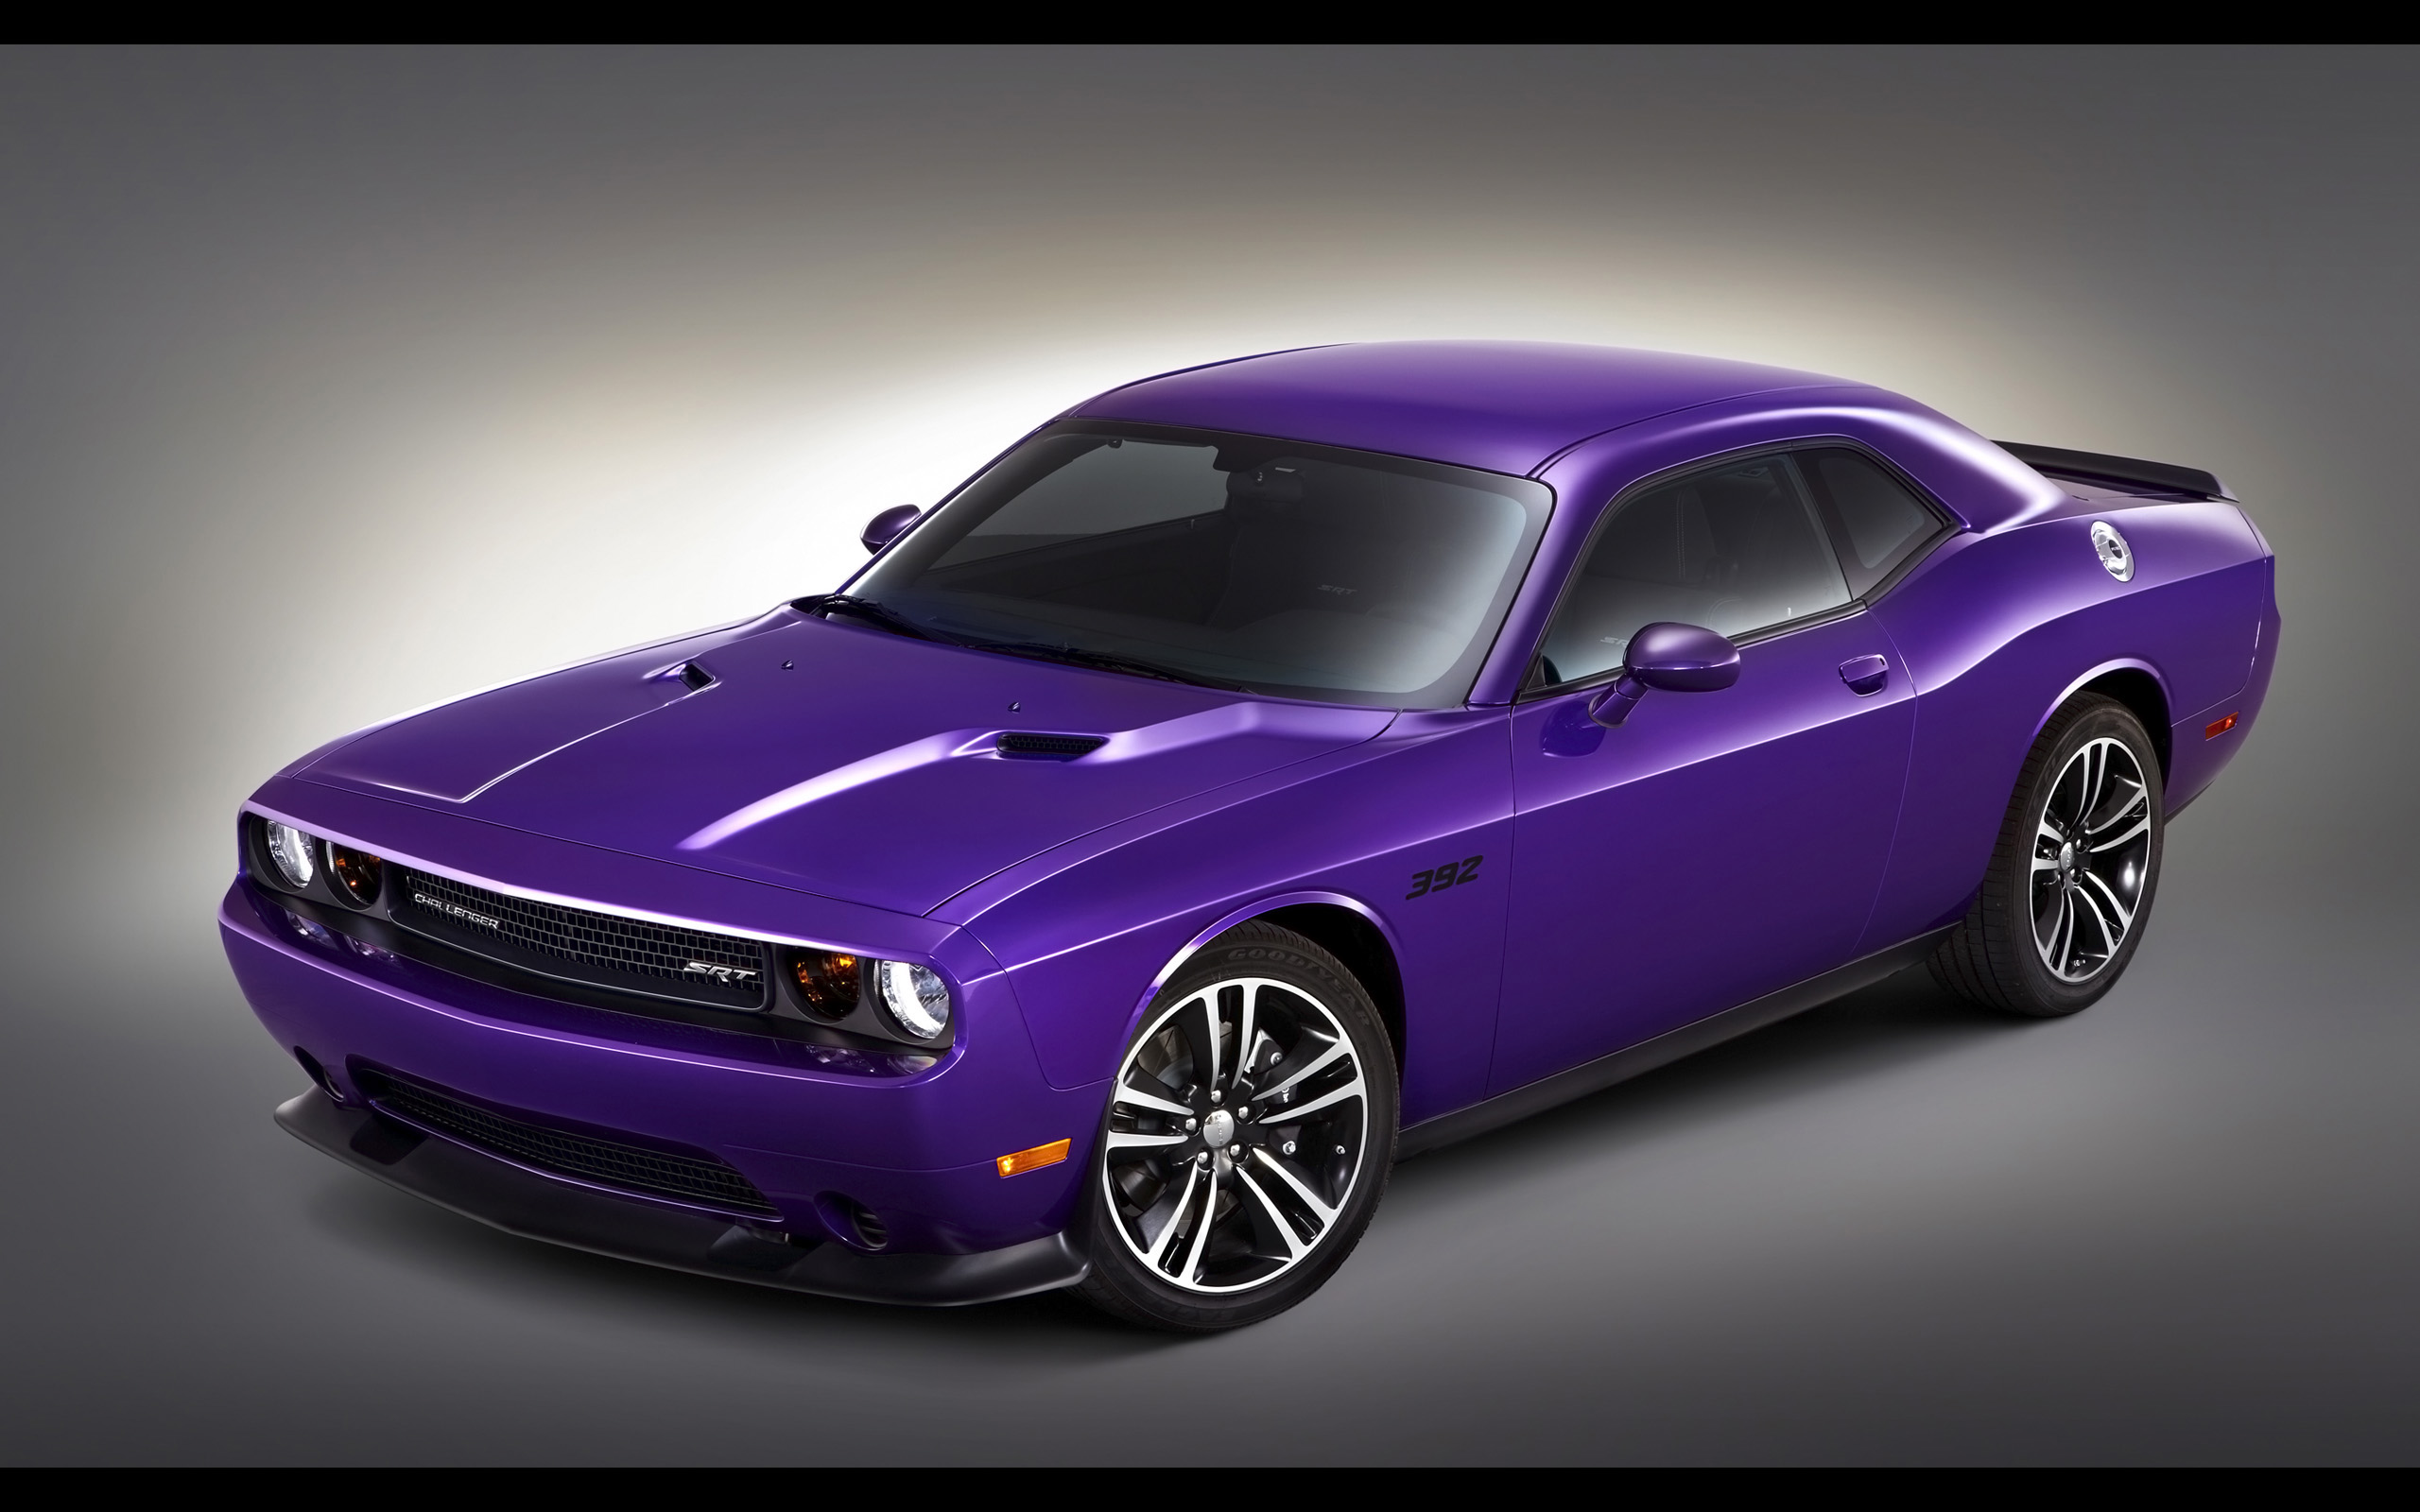 2014 Dodge Challenger SRT Wallpaper | HD Car Wallpapers